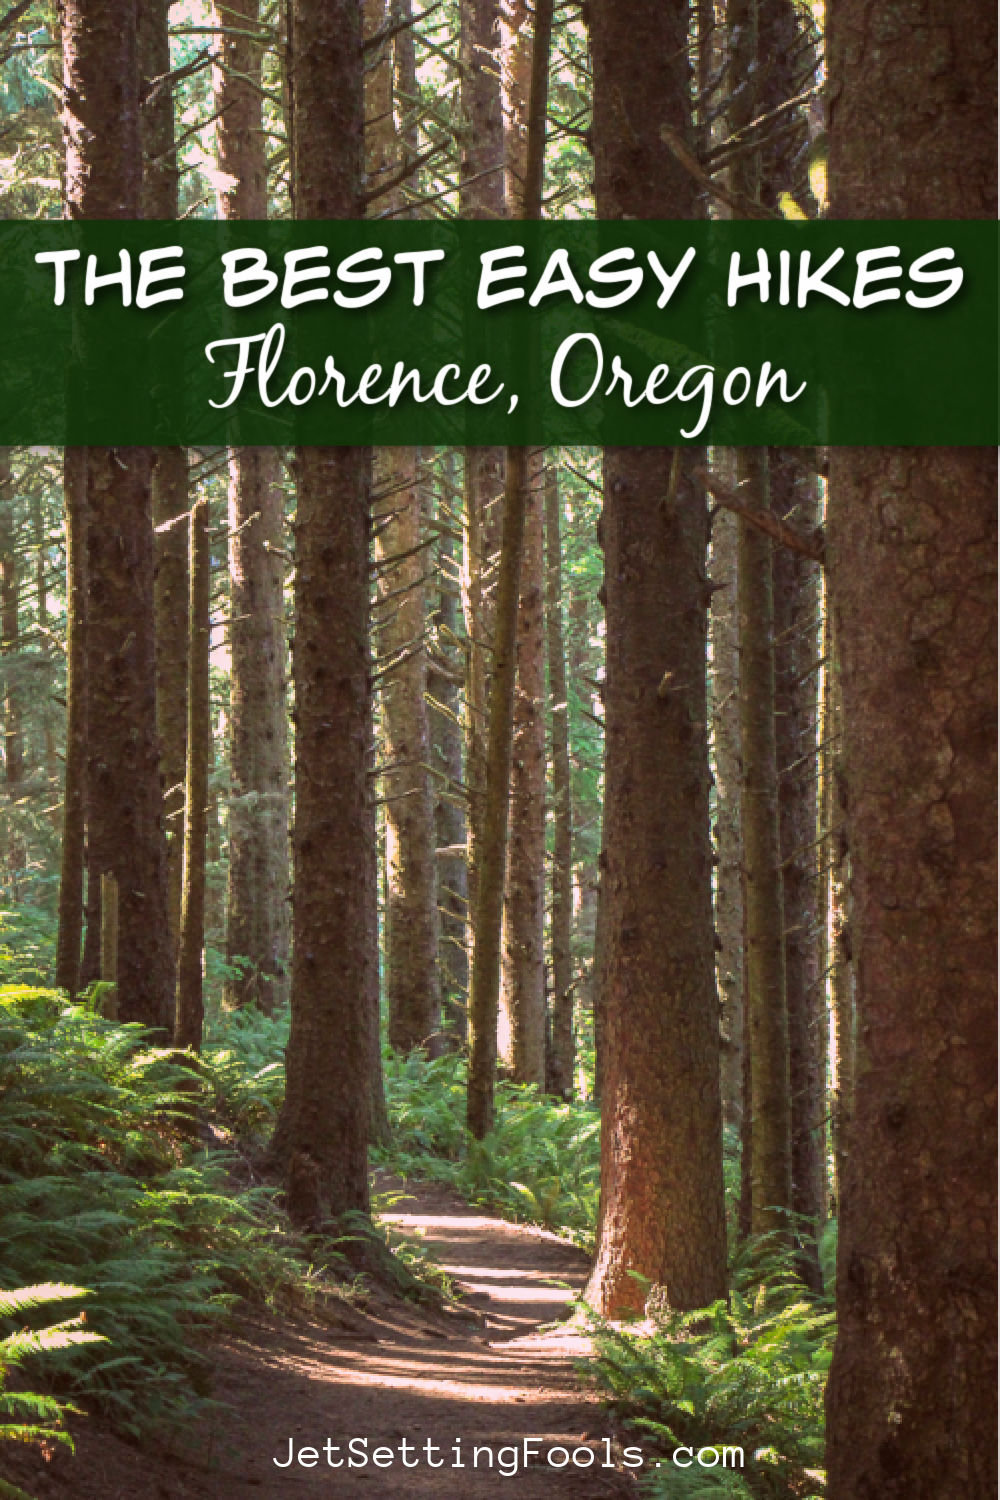 The Best Easy Hikes Florence, Oregon by JetSettingFools.com